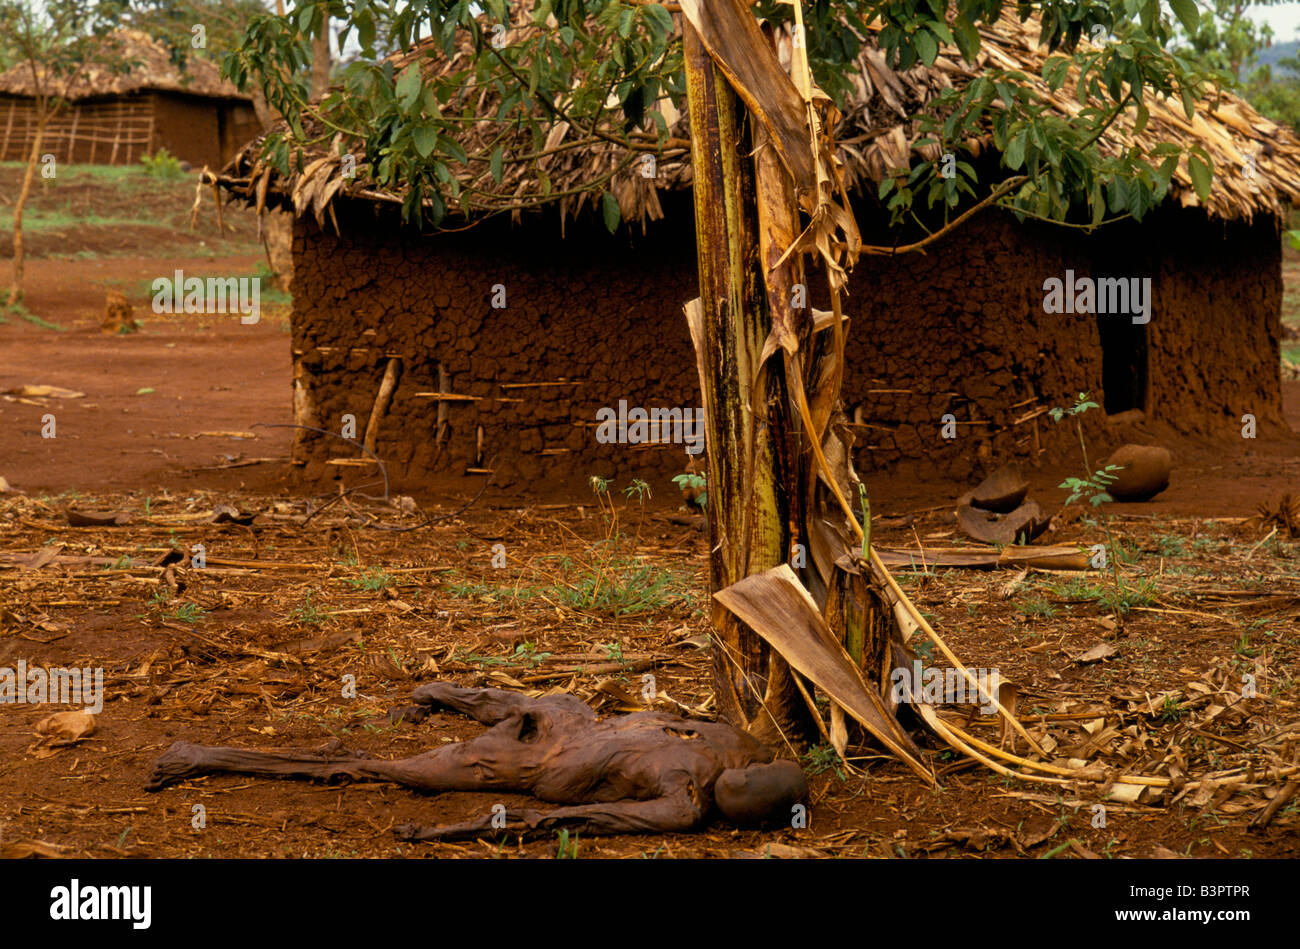 A Dead Body Lies Outside An Abandoned House Near The